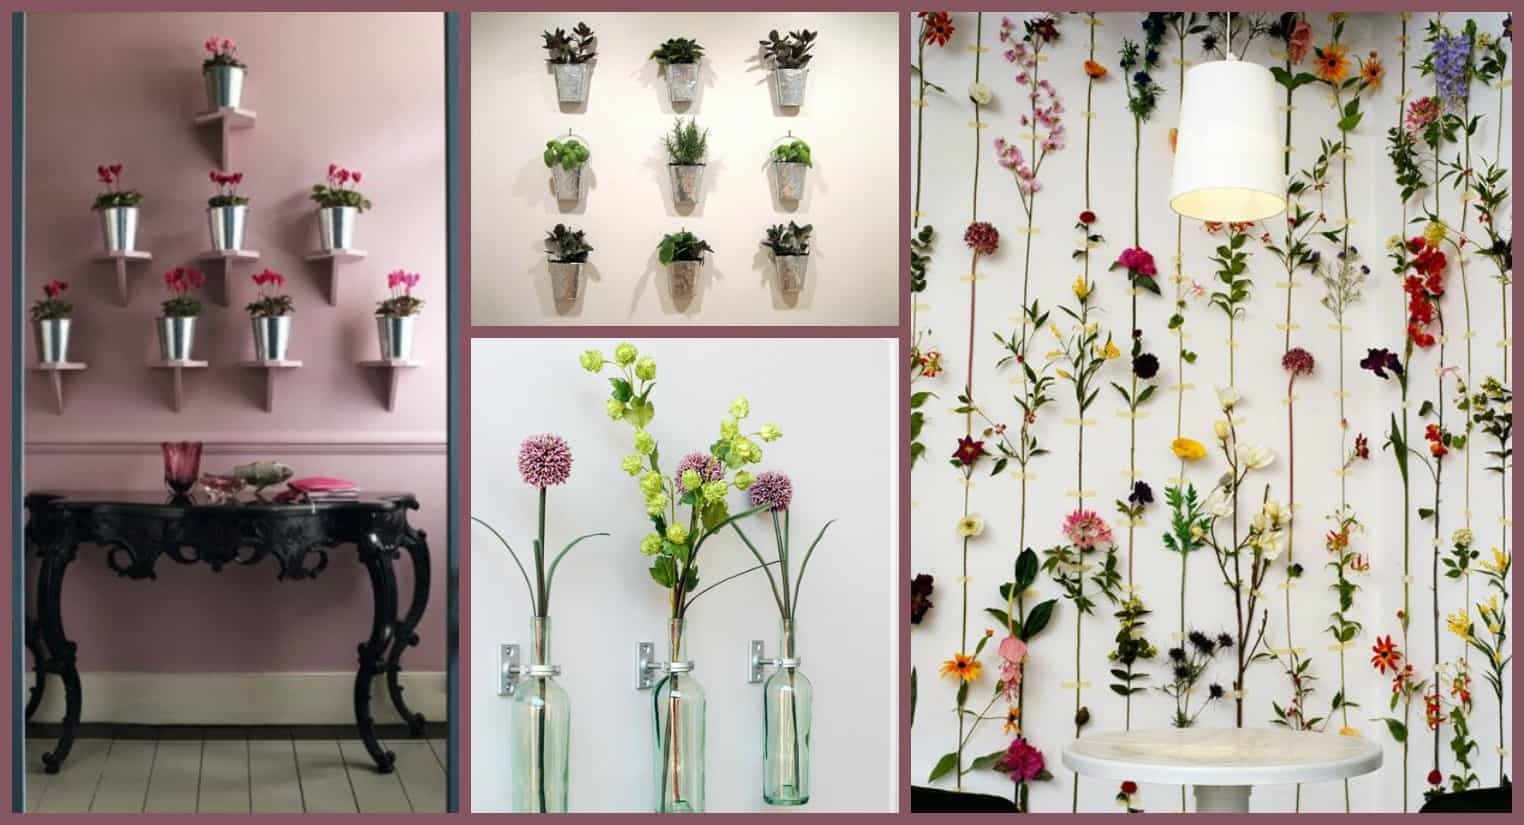 Diy 10 idee su come decorare una parete di casa for Decorare le pareti